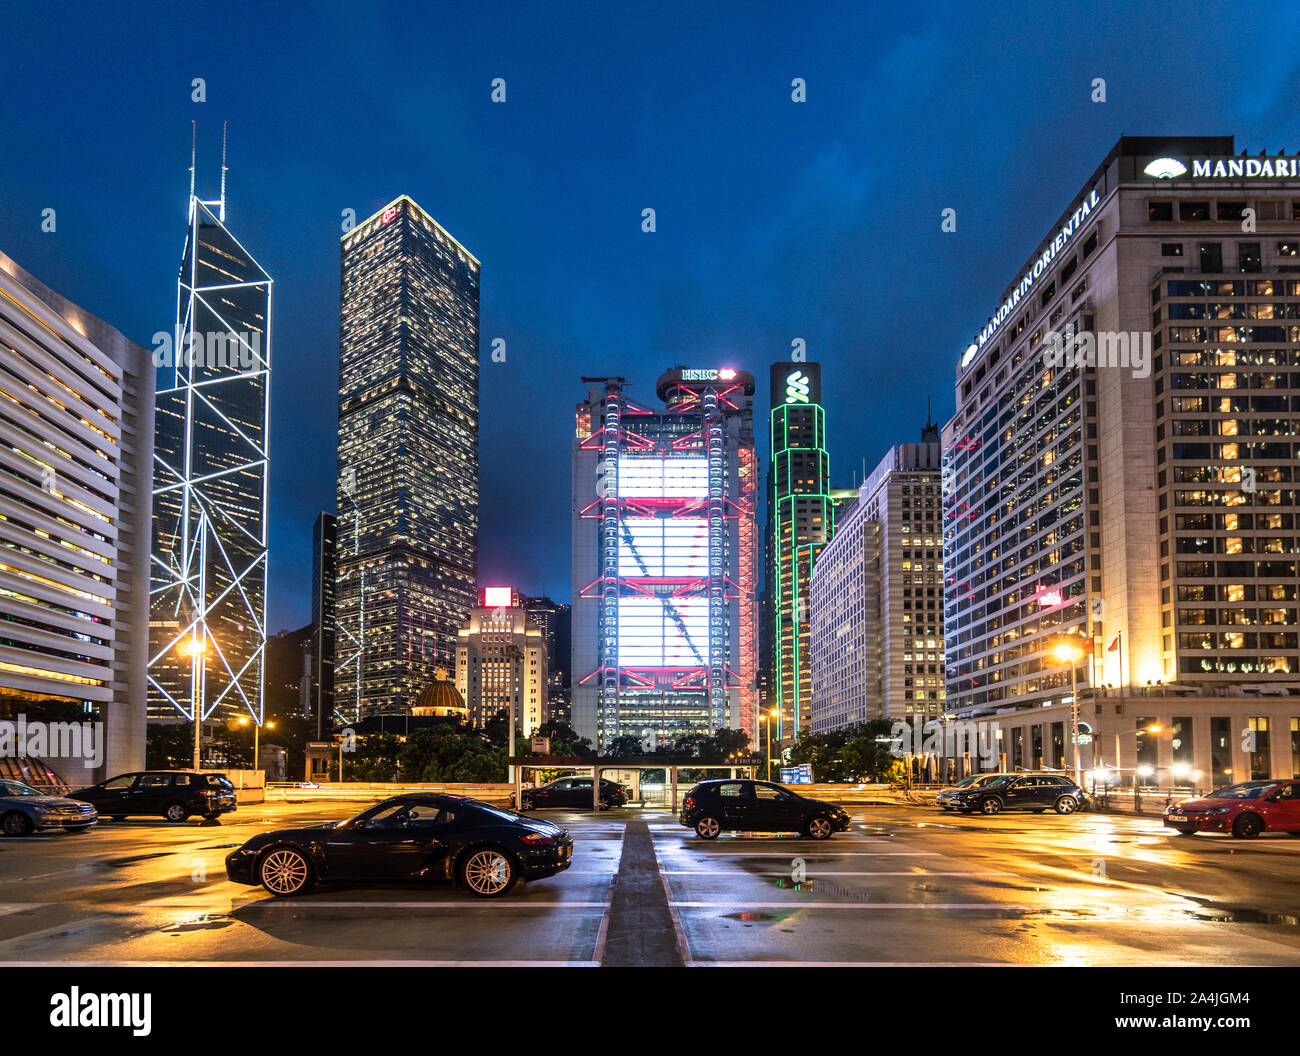 Hong Kong - China - July 4 2019: Luxury sport cars parked on a rooftop parking in Hong Kong Central business district with major bank office building Stock Photo